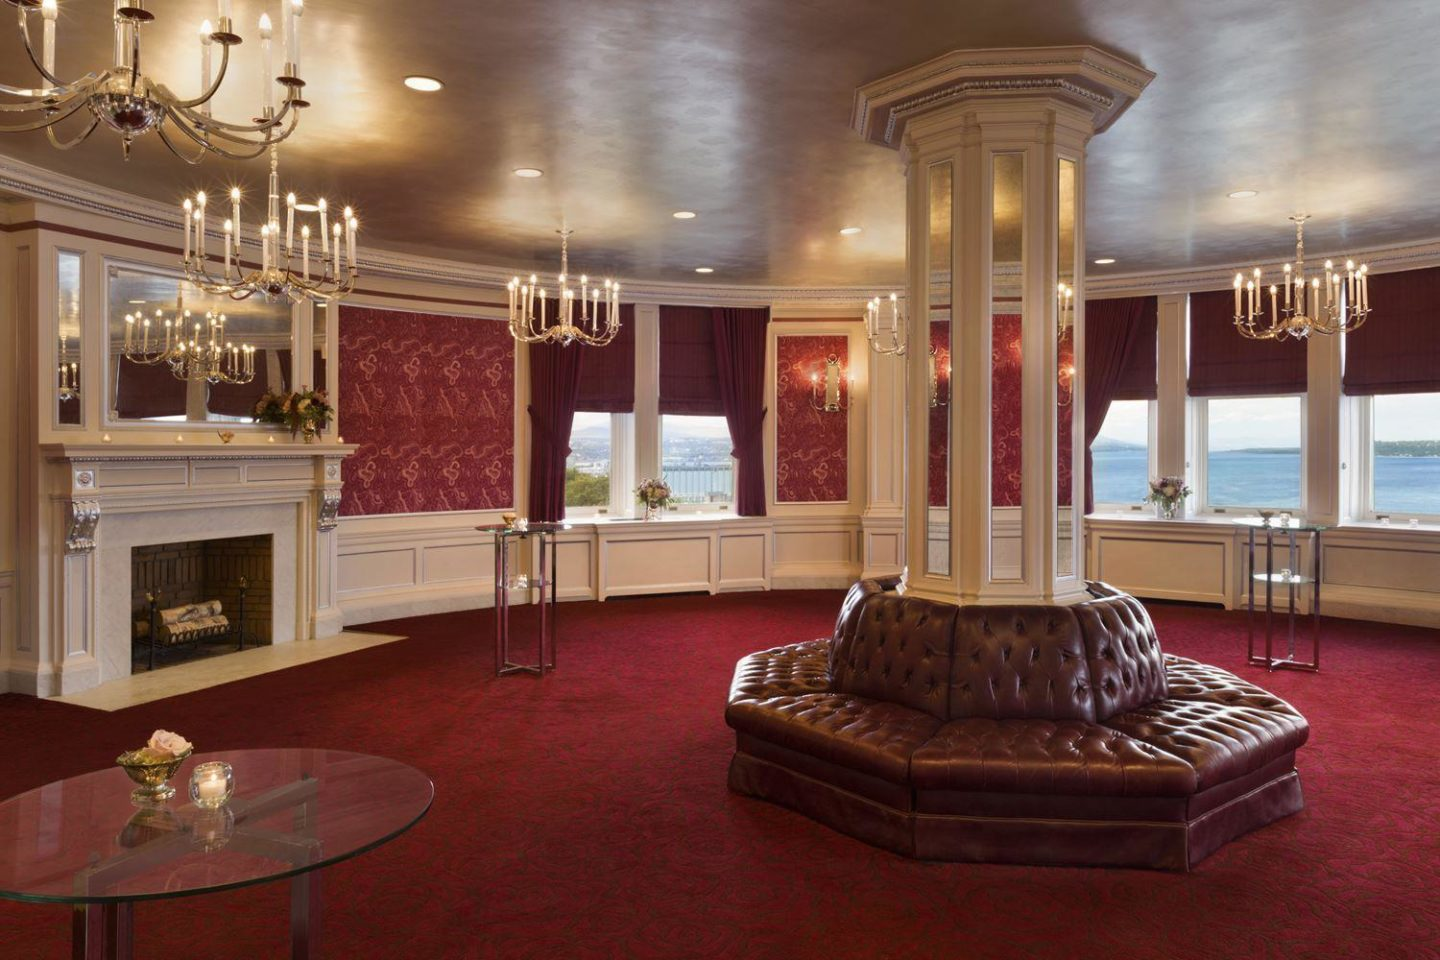 Salon Rose of the Fairmont Le Chateau Frontenac in Quebec City, Quebec, Canada